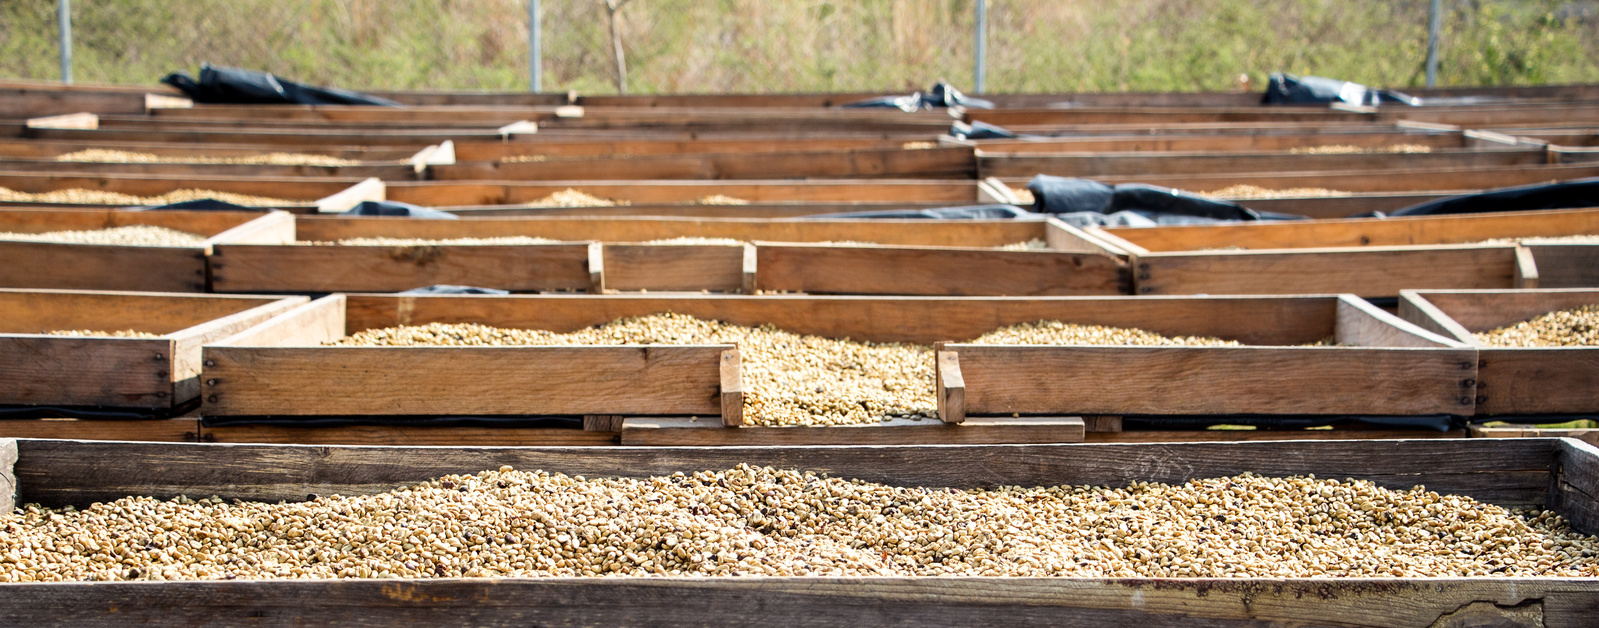 Drying beds with coffee beans